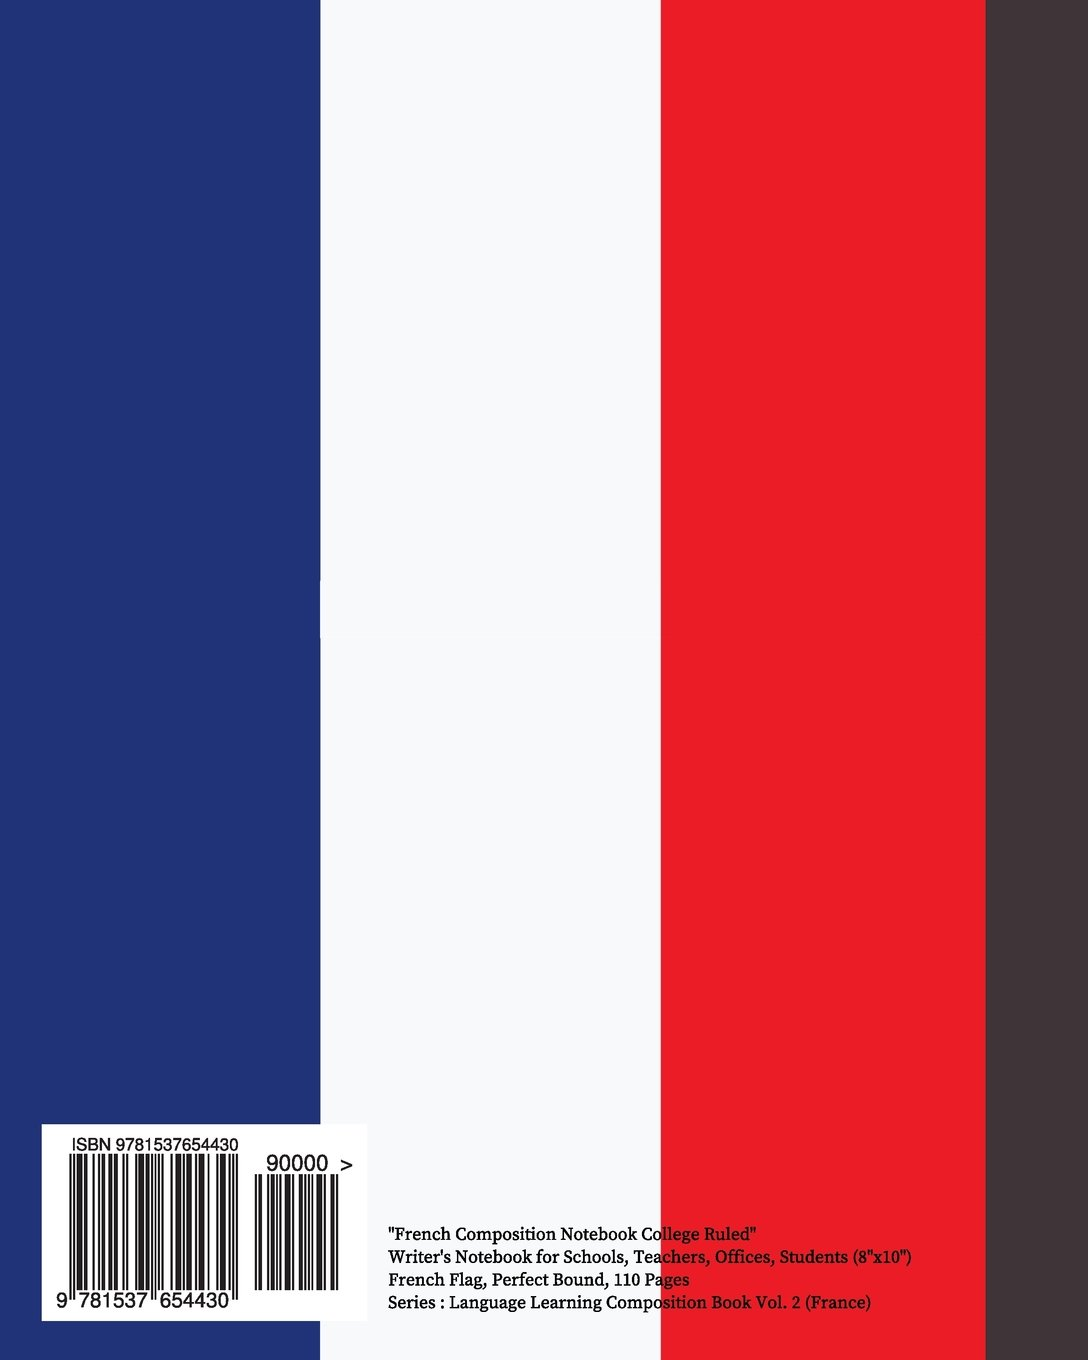 amazon com french composition notebook college ruled writer u0027s